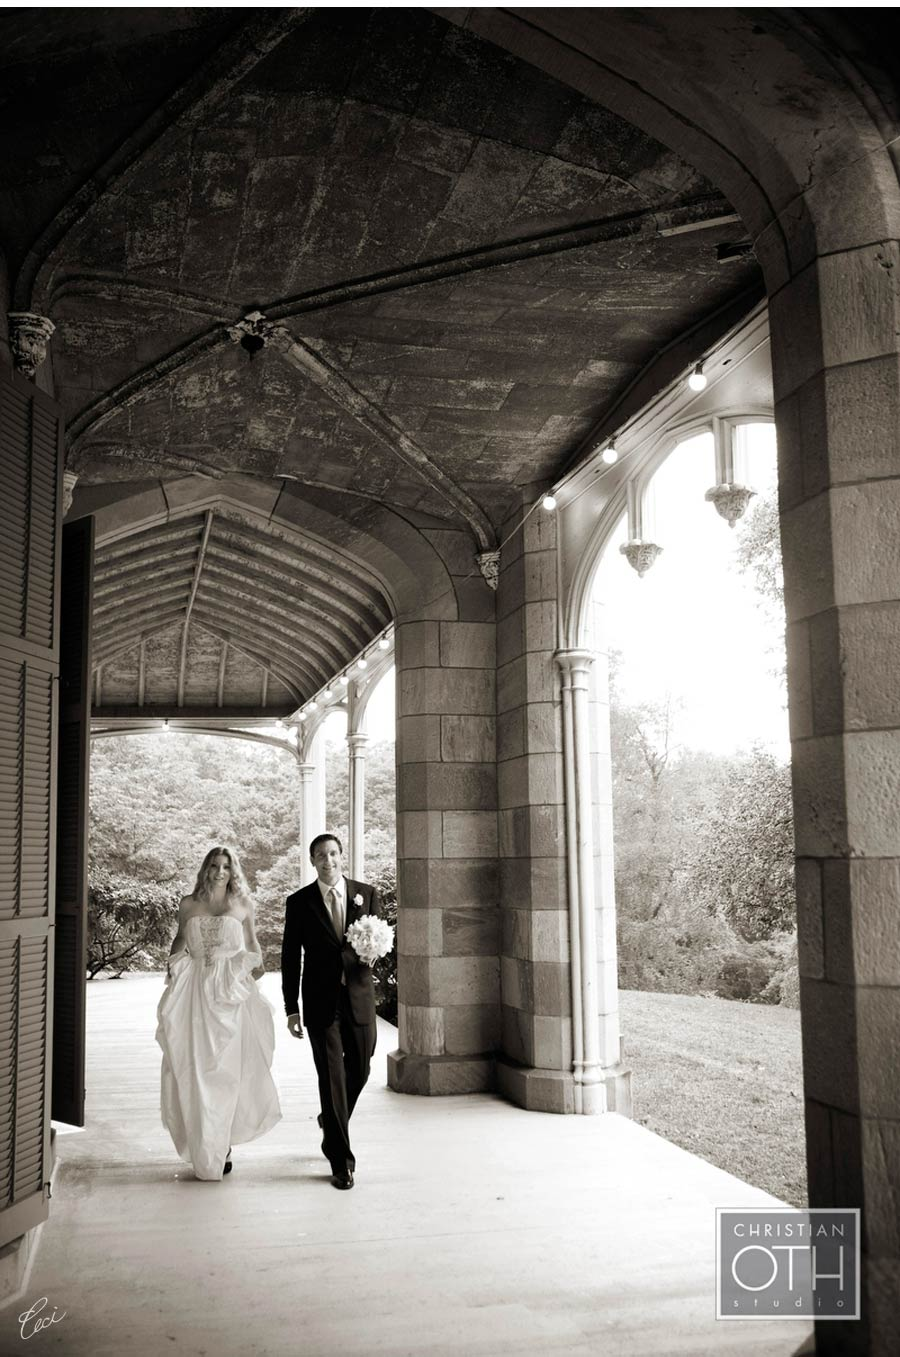 Our Muse - Wedding Photos - Be inspired by Joscelyn & Aaron's castle wedding at Lyndhurst Castle, Tarrytown, New York